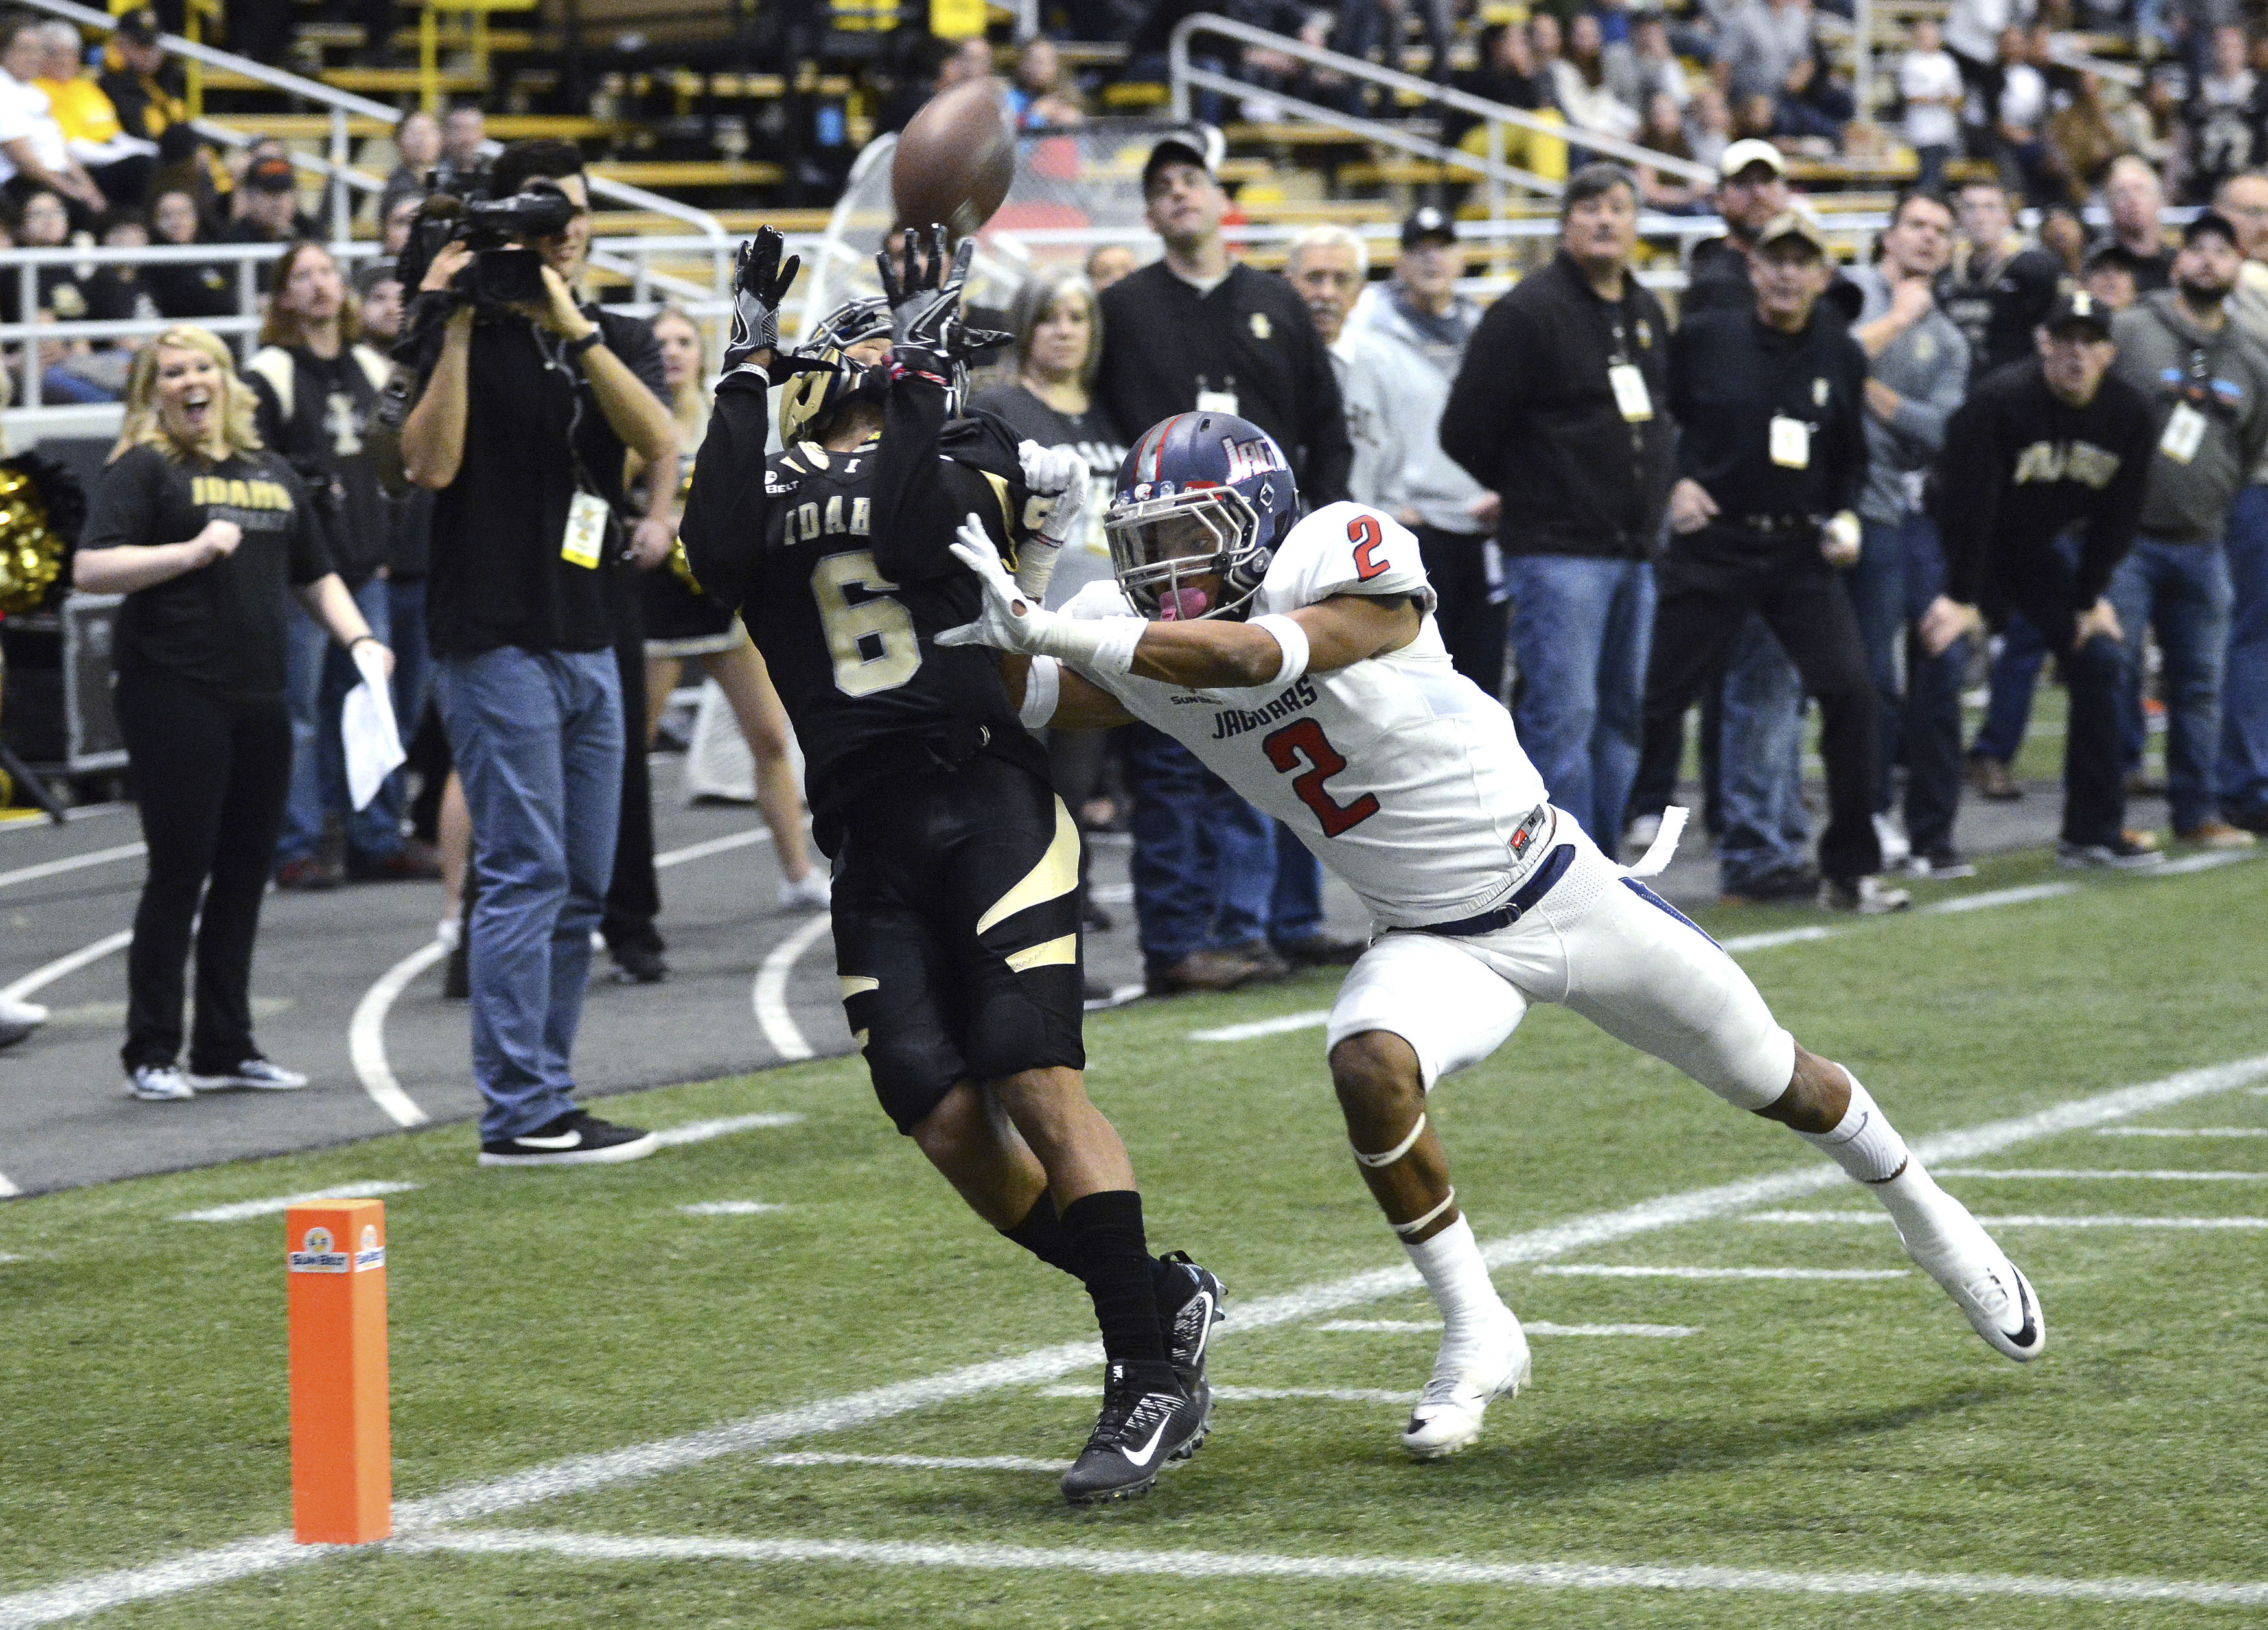 Idaho's Callen Hightower (6) makes a touchdown reception in front of South Alabama's Jalen Thompson (2) during the second quarter of an NCAA college football game Saturday, Nov. 26, 2016, in Moscow, Idaho. (Kyle Mills/Lewiston Tribune via AP)